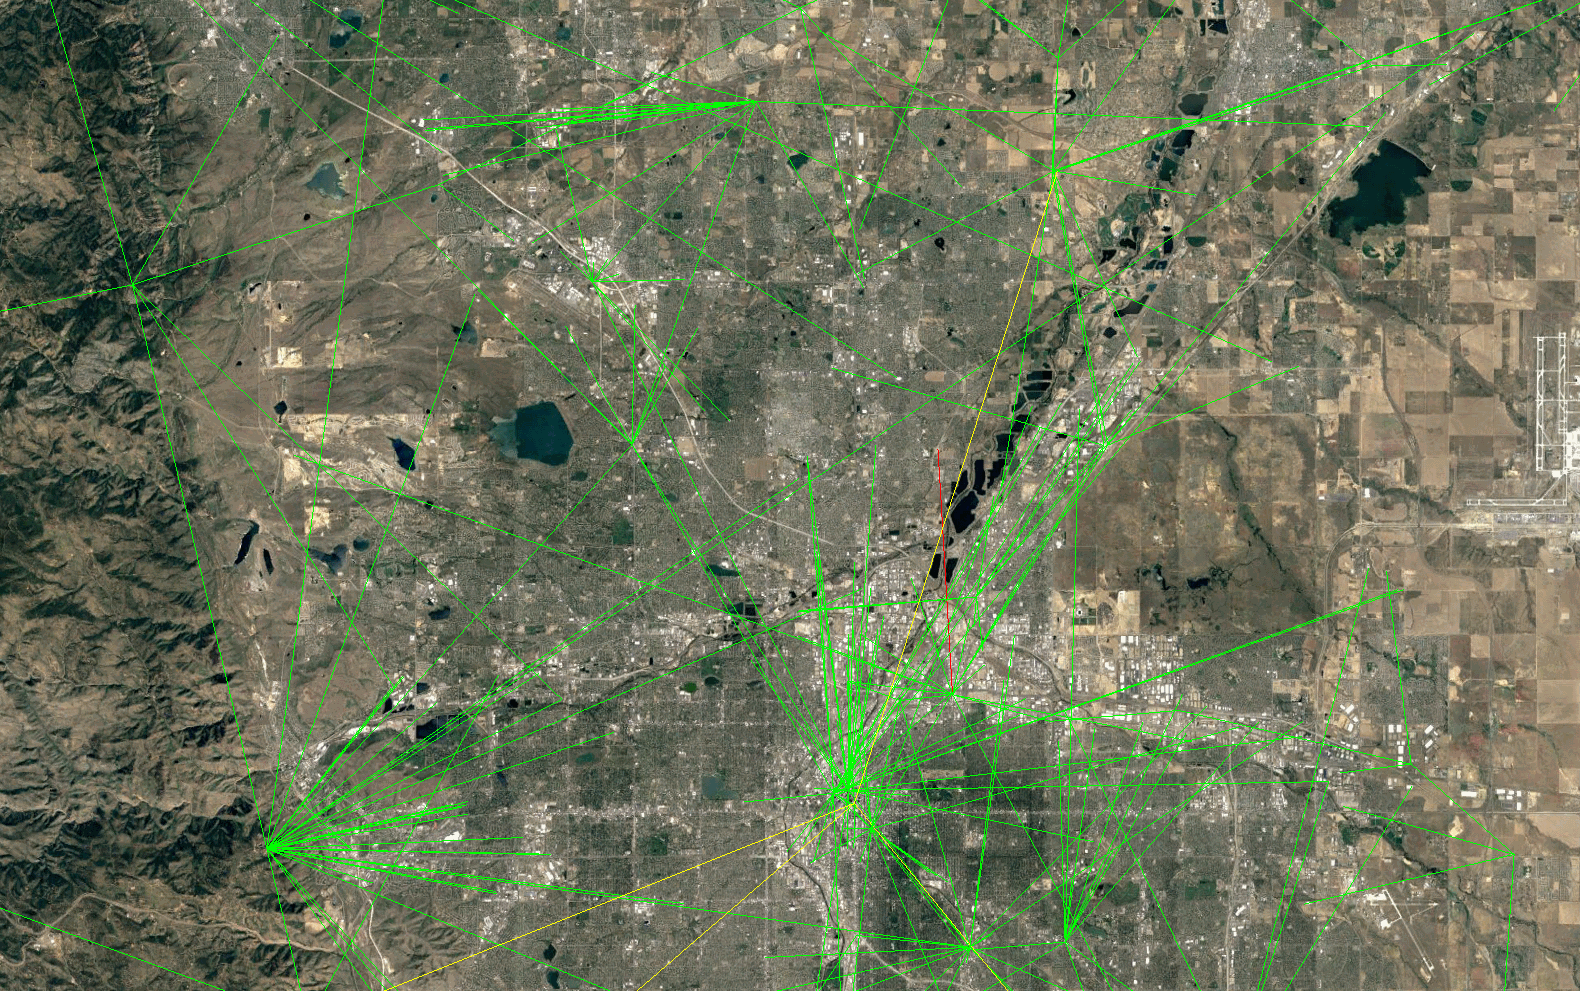 Screenshot showing a network in Colorado